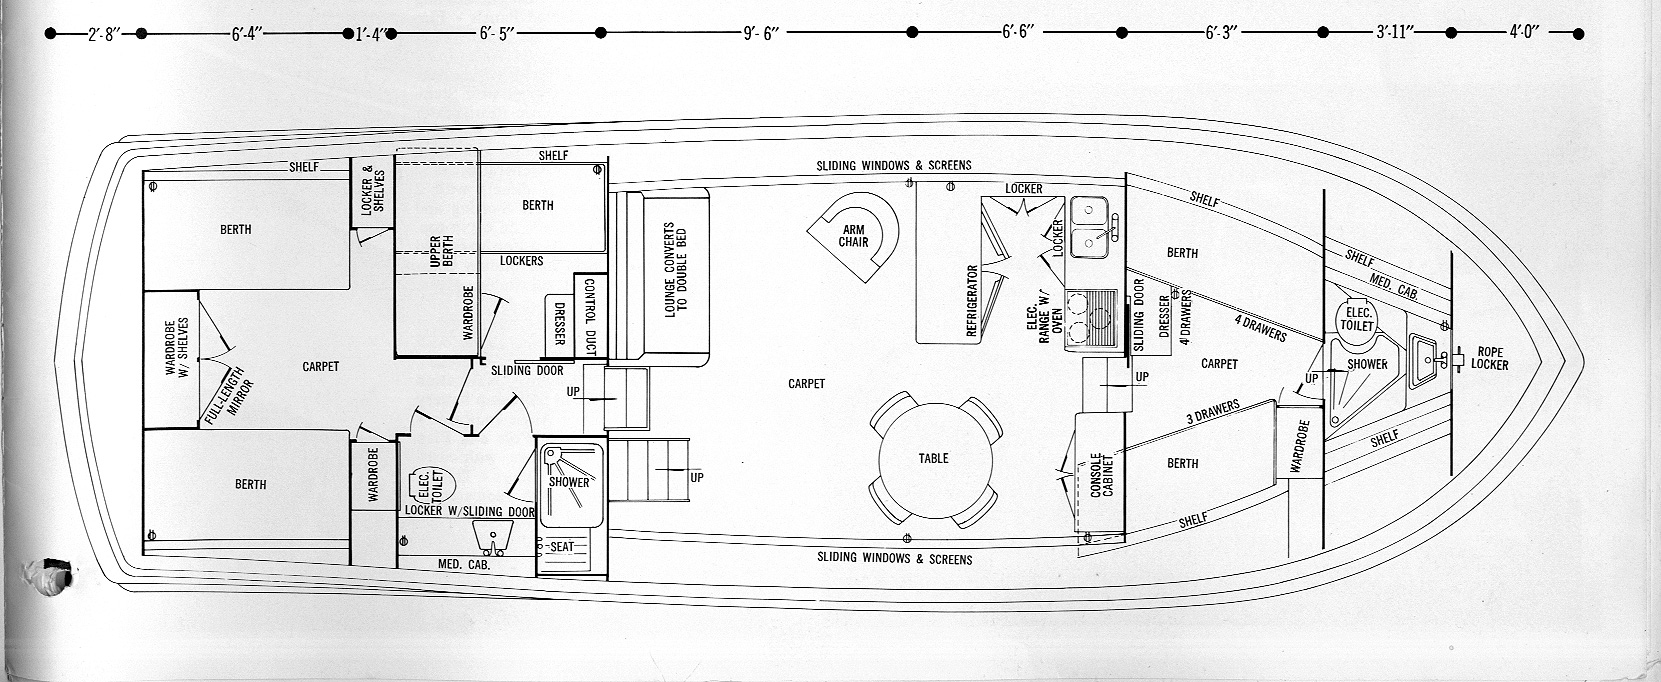 commander_floor_plan